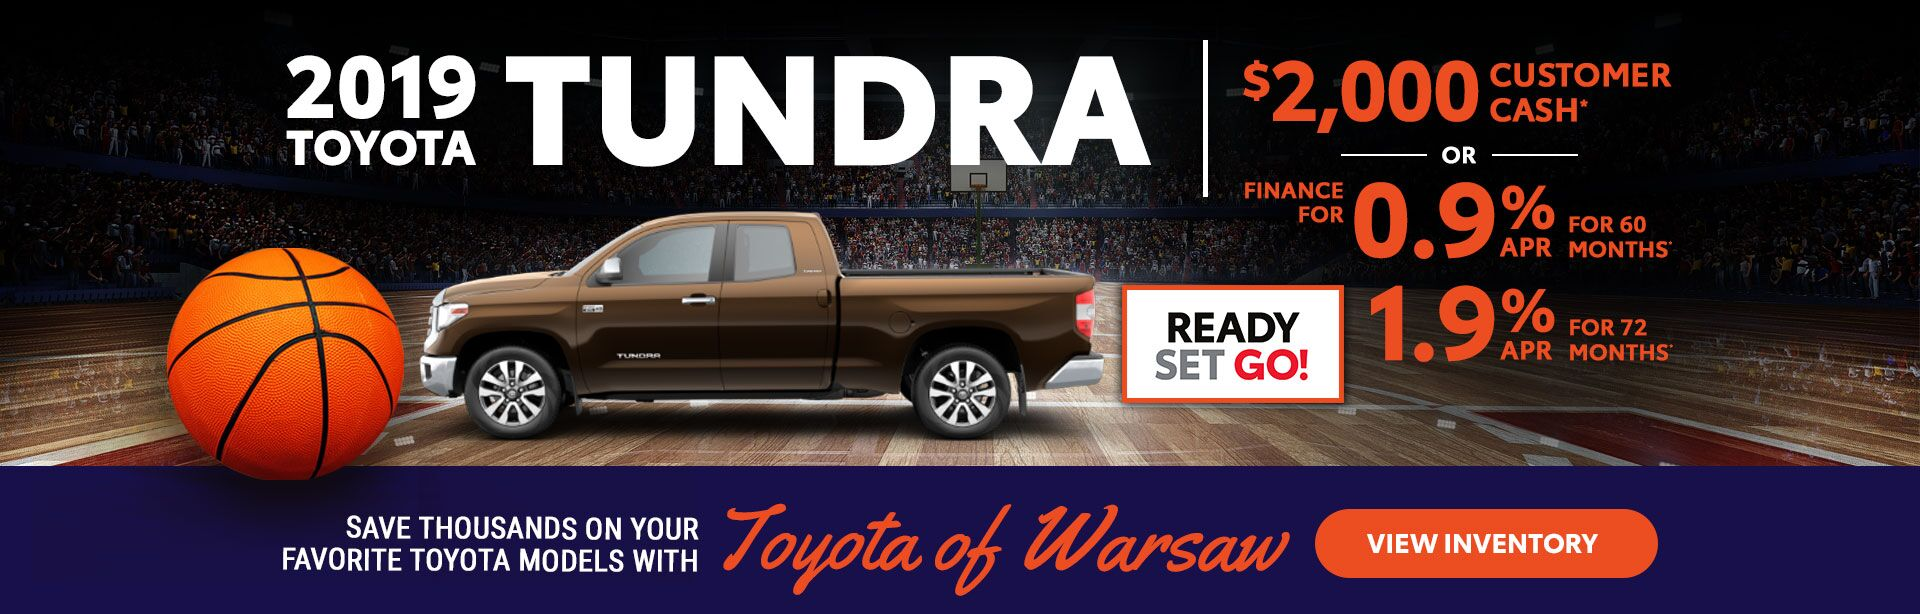 2019 Tundra: $2,000 customer cash or 0.9% APR for 60 months/1.9% APR for 72 months